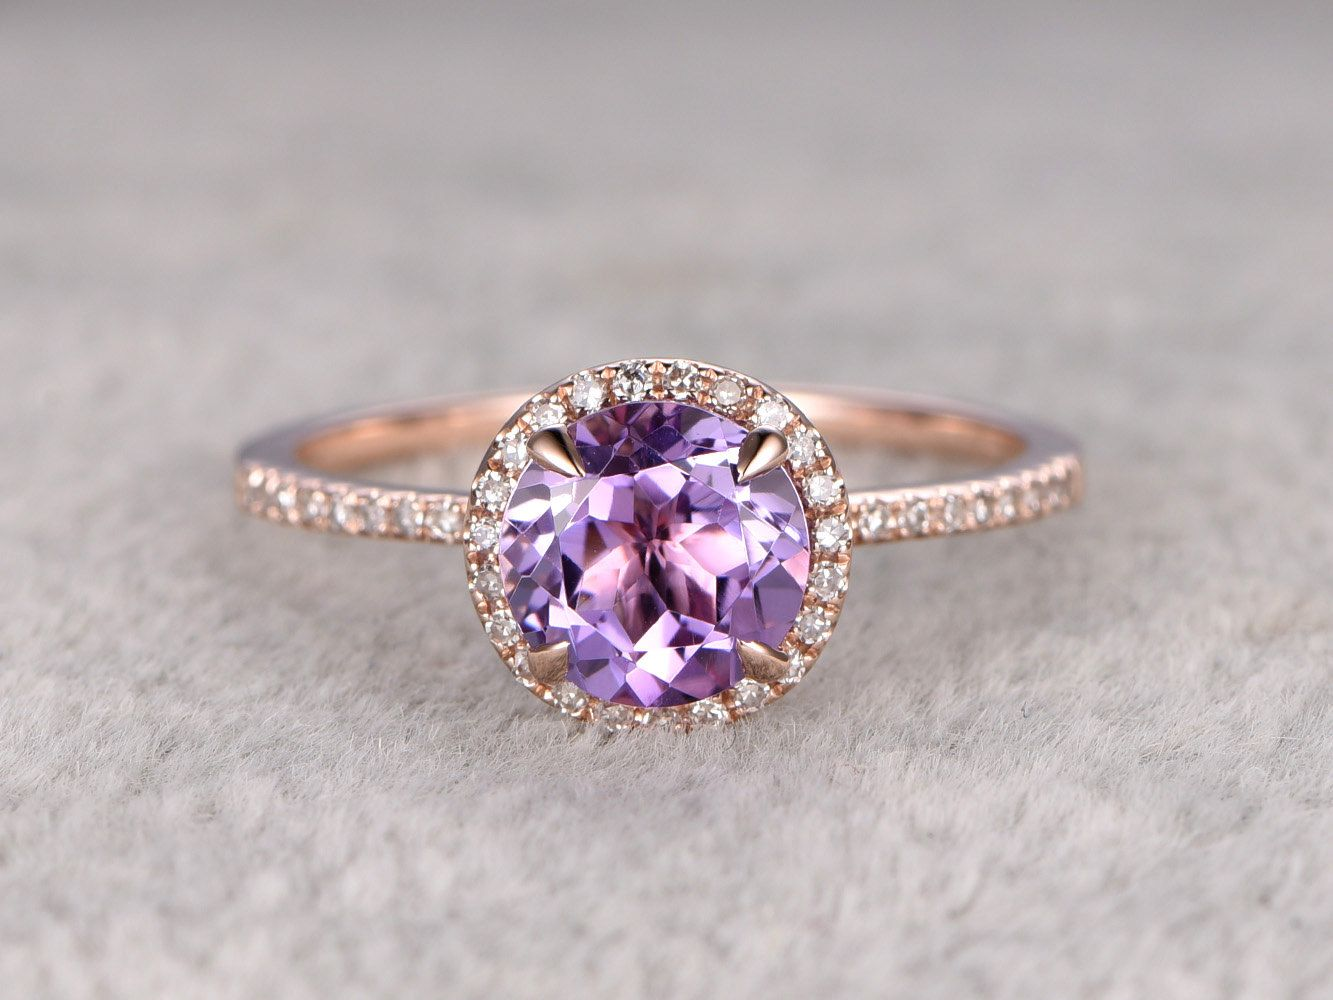 natural purple rings wedding us amethyst gem gold half il stone eternity engagement petit matching princess size set cut ring band rose fullxfull